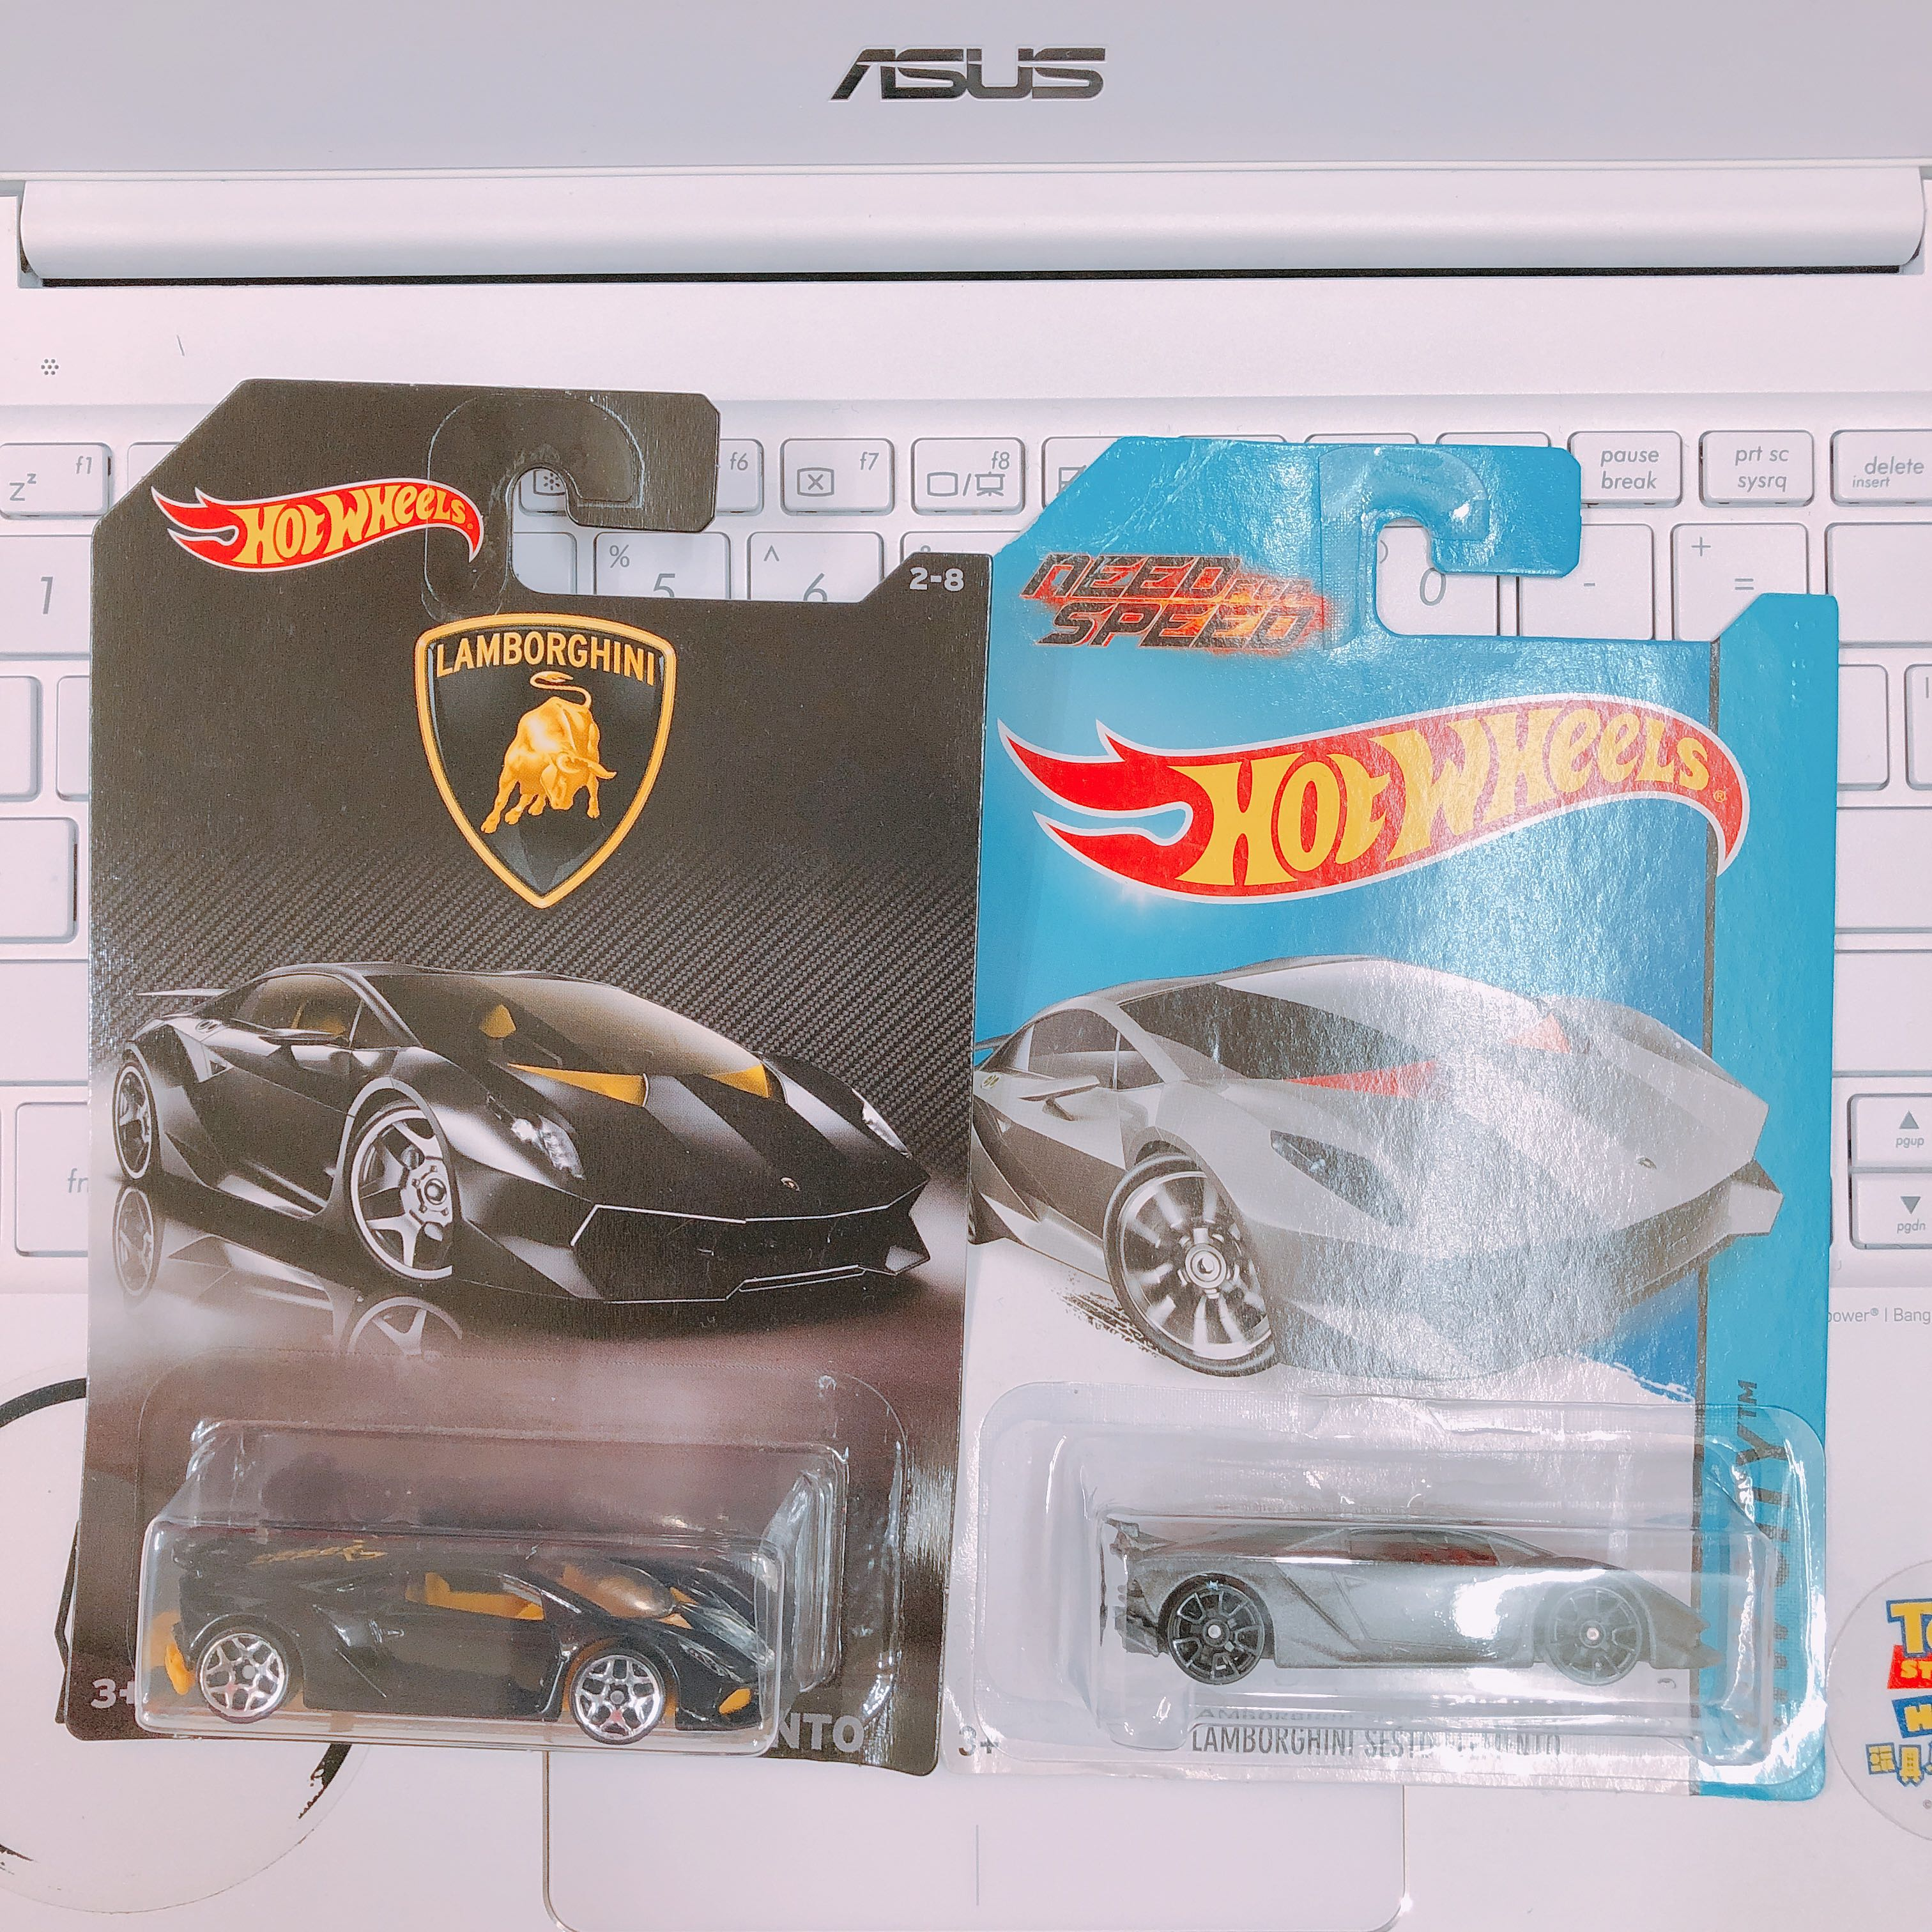 Hotwheels Lamborghini Sesto Elemento Toys Games Other Toys On